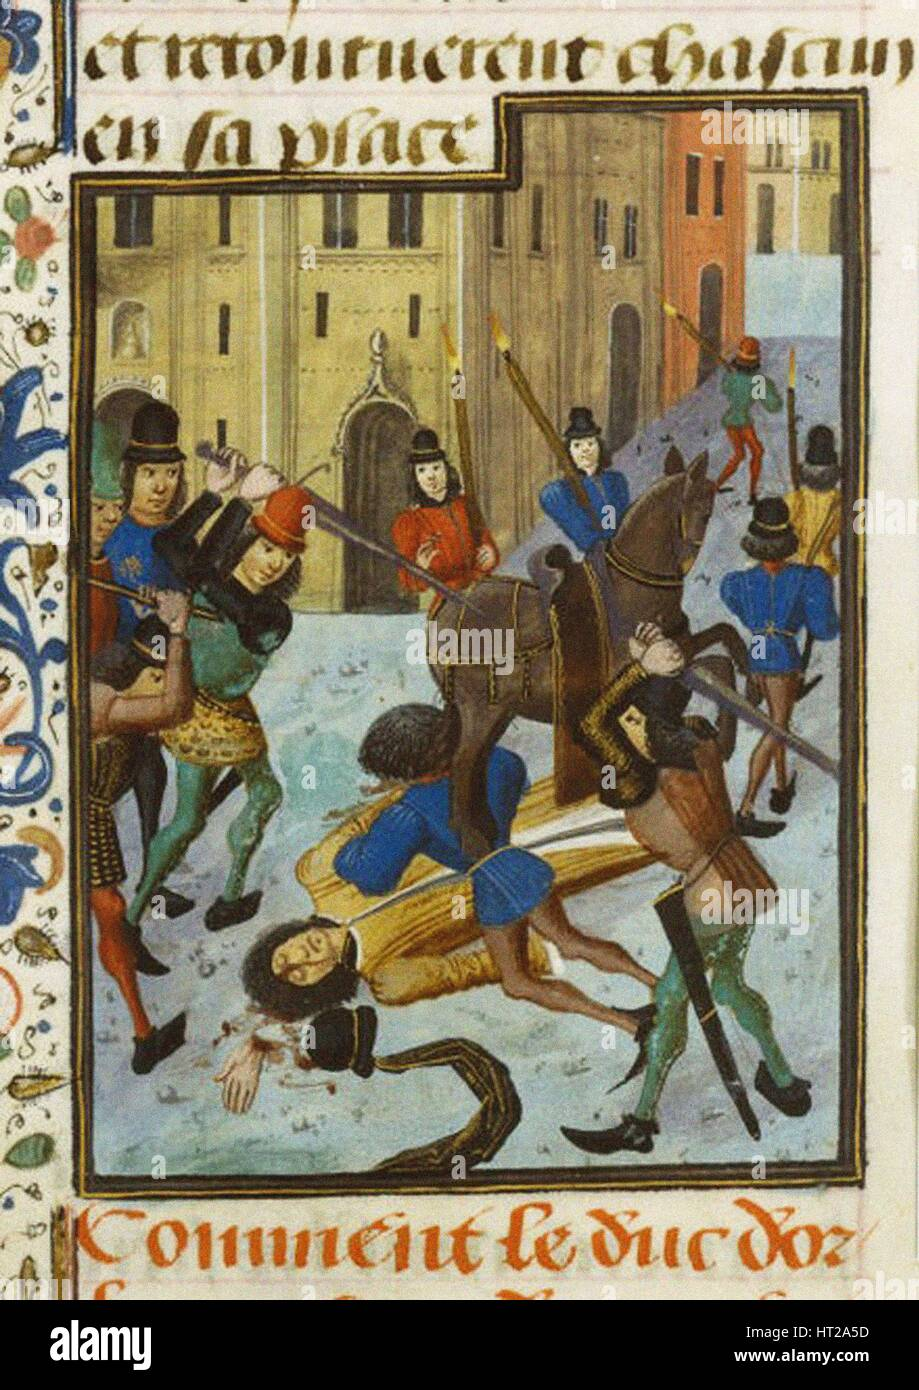 The Assassination of Louis I, Duke of Orléans, ca. 1470-1480.